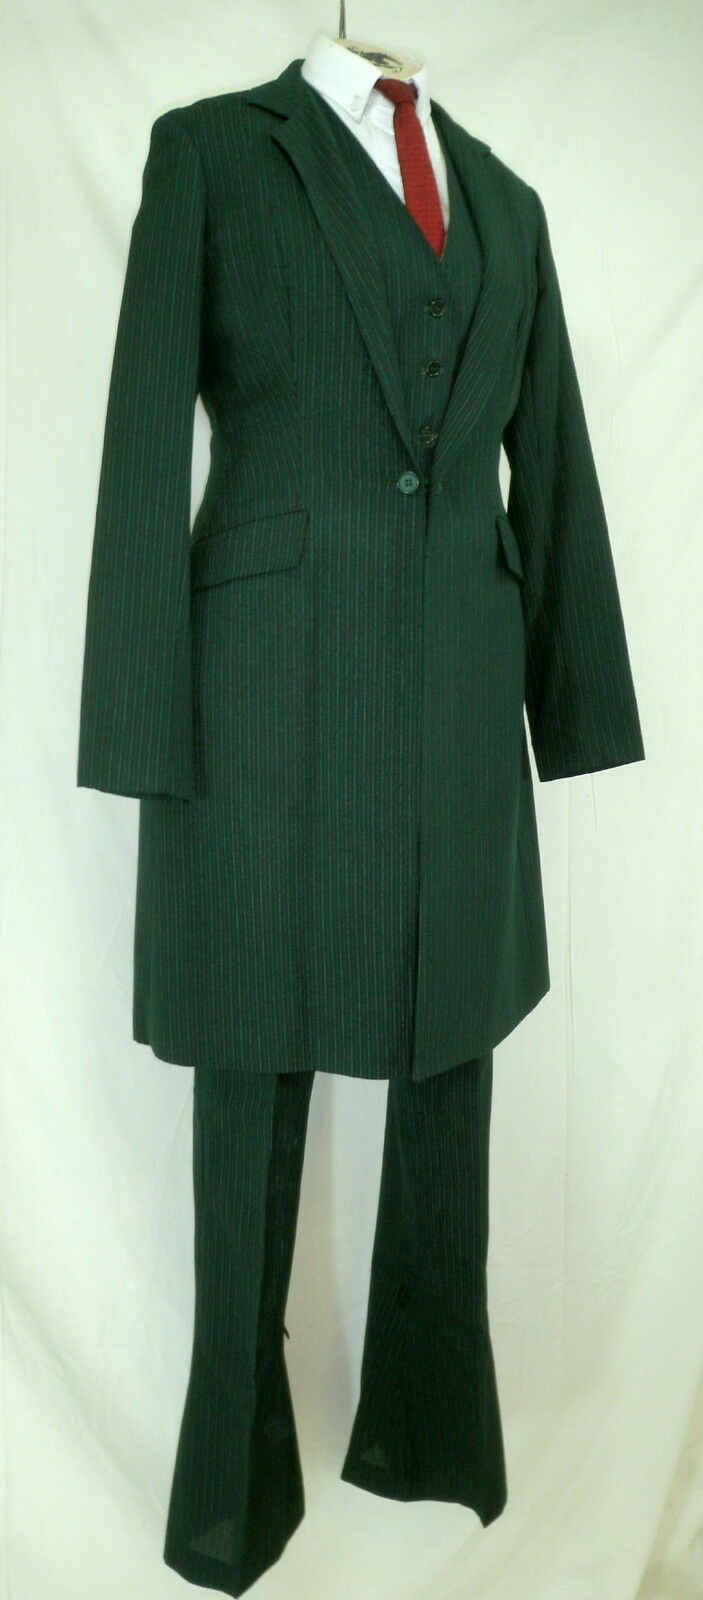 Reed Hill  Saddleseat Ld 3p suit Hunter Green Pin Wool Blend size 14  sale